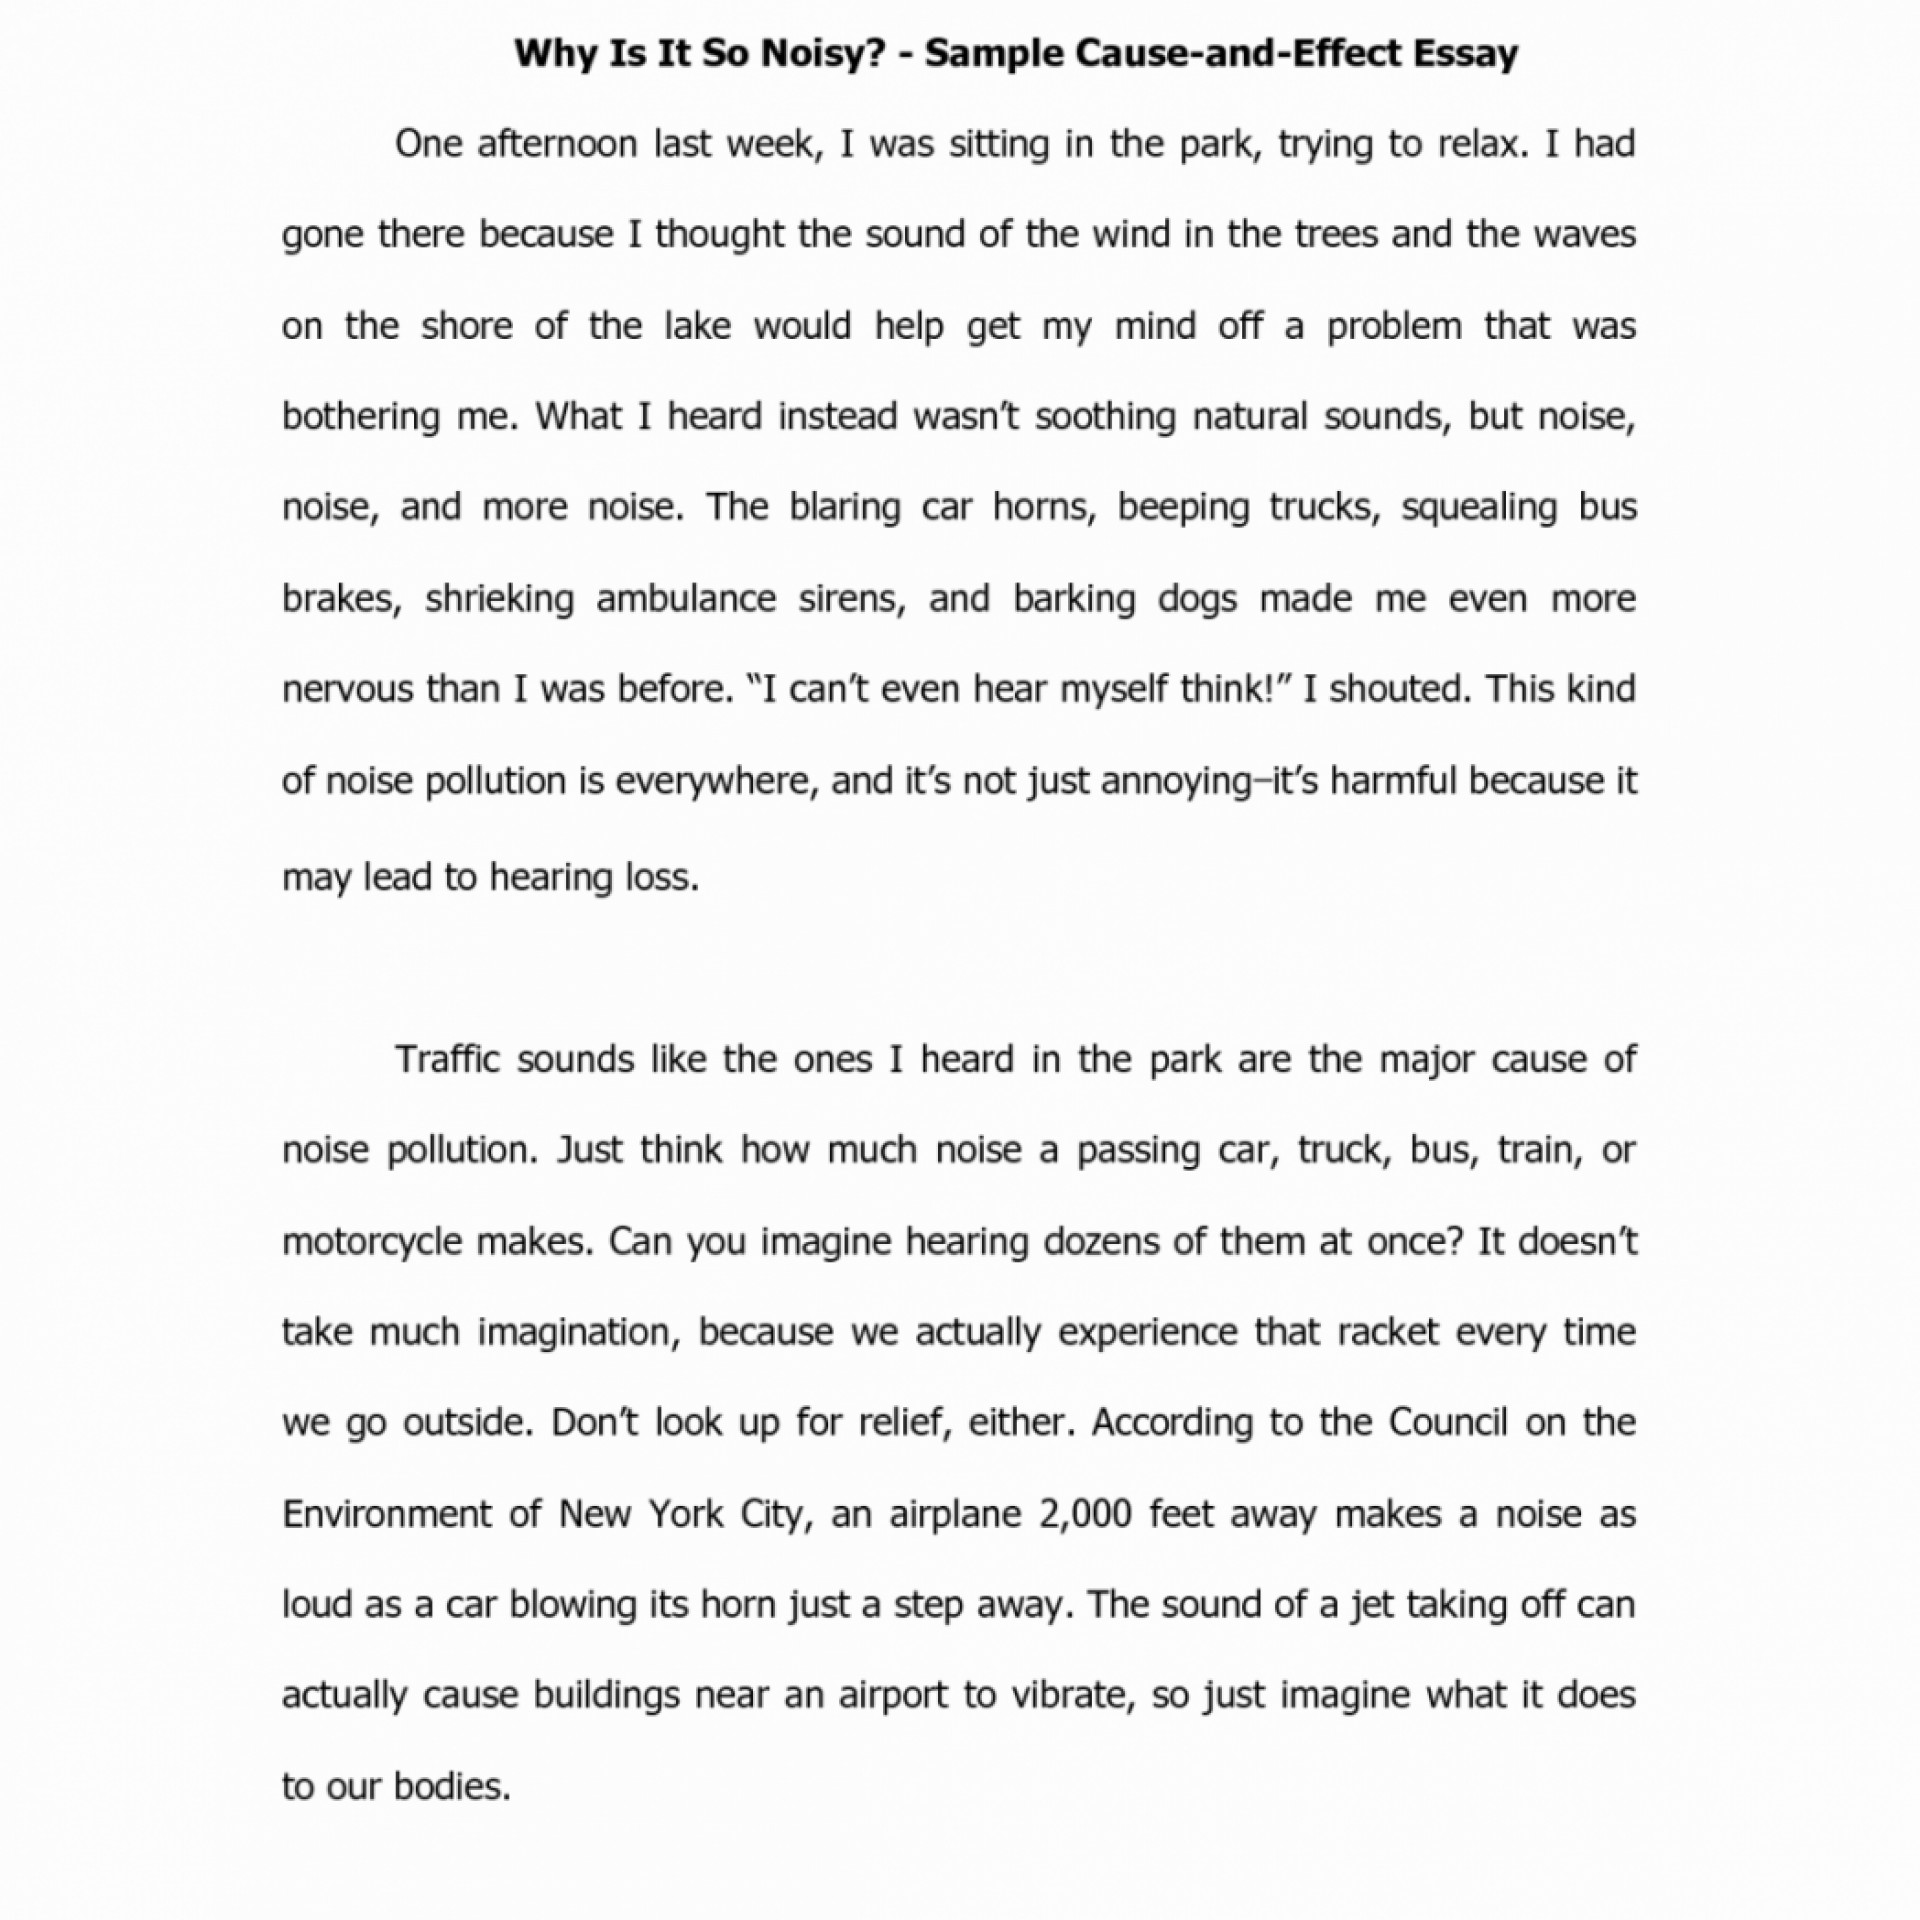 027 Cause And Effect Essays Format Best Of For Or Good Cover Bystander Domino Analysis Ielts Free 6th Grade College Pdf Middle School 1048x1048 Amazing Essay Examples On Stress 4th 1920